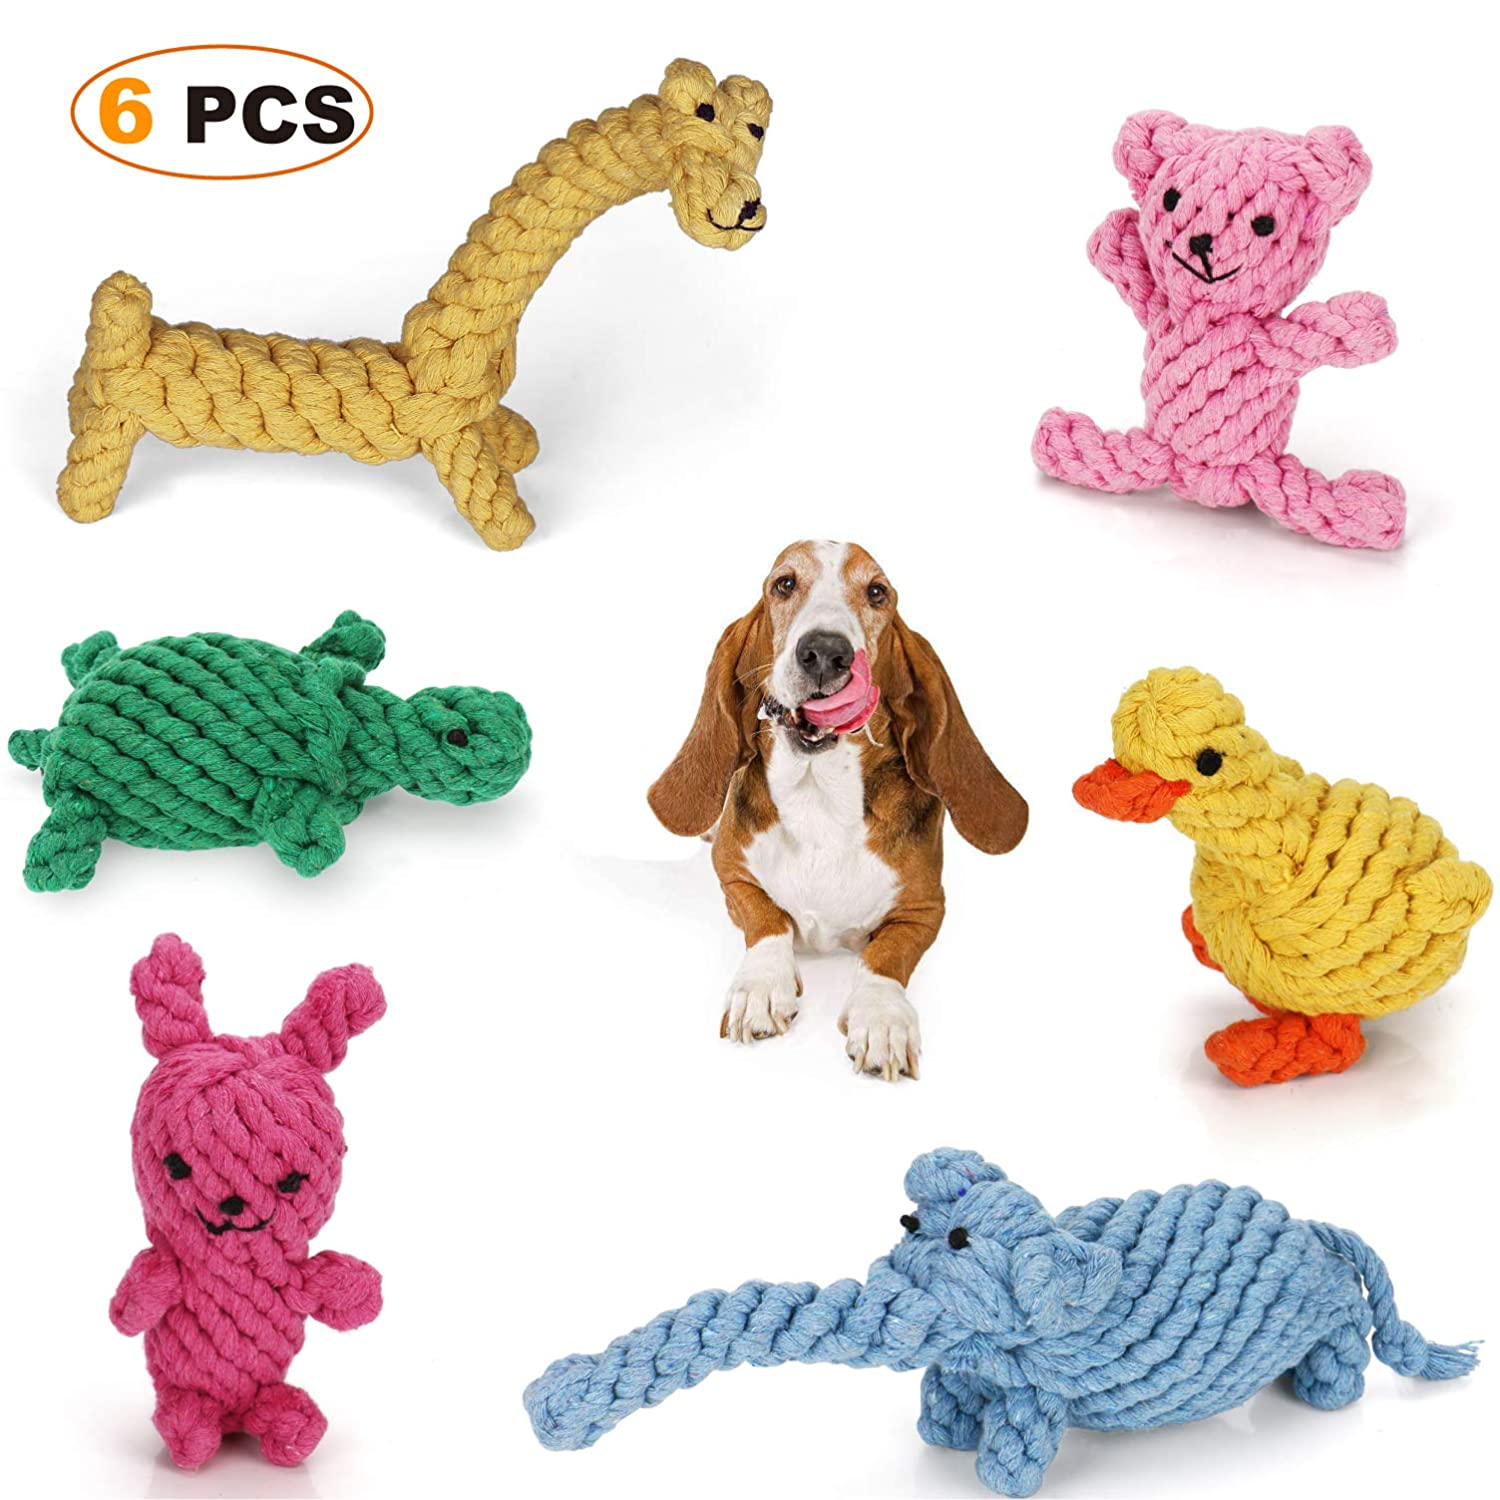 Toys Sturdy Bit -Resistente Piccolo a Medi Dog Animali domestici Teeth Cleaning Toys Dog Rope Toys Cotton Chew Toys for Small to Medium Dog Animali domestici Teeth Cleaning Toys (6)